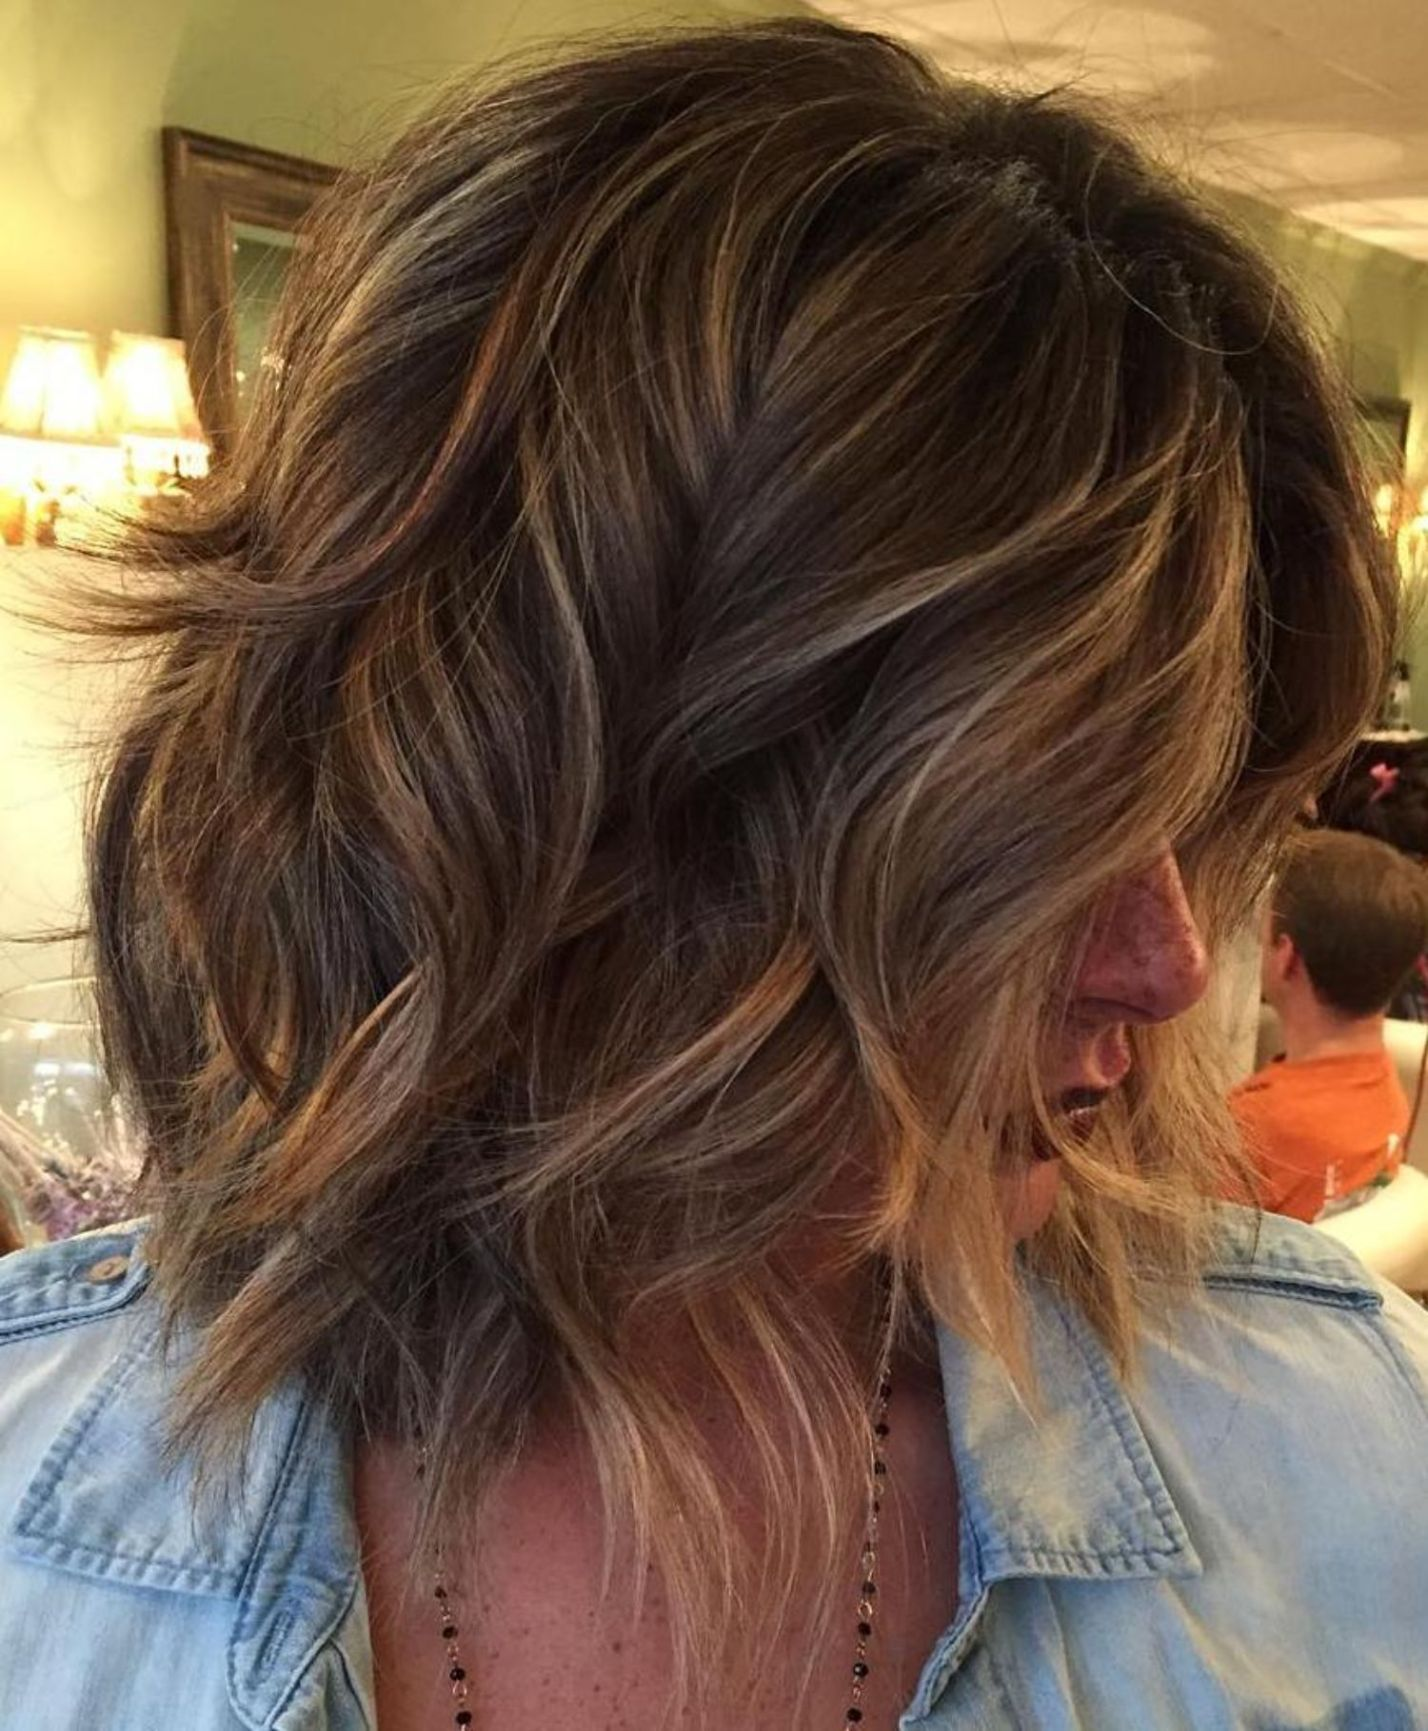 Sensational Medium Length Haircuts for Thick Hair in lace